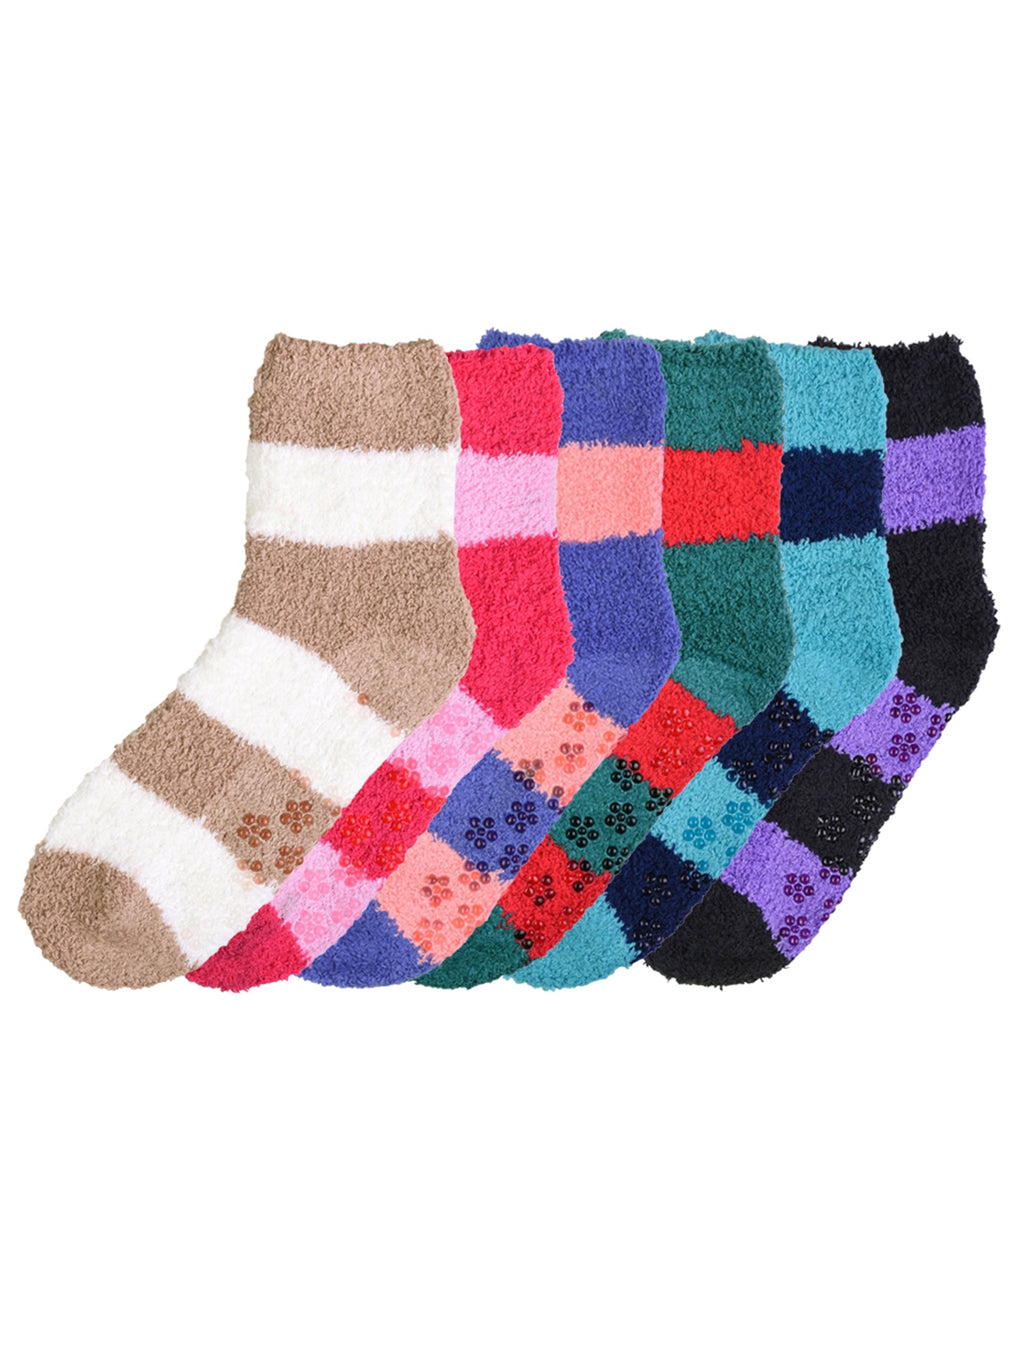 Womens Two-Tone Striped 6 Pack Fuzzy Crew Socks